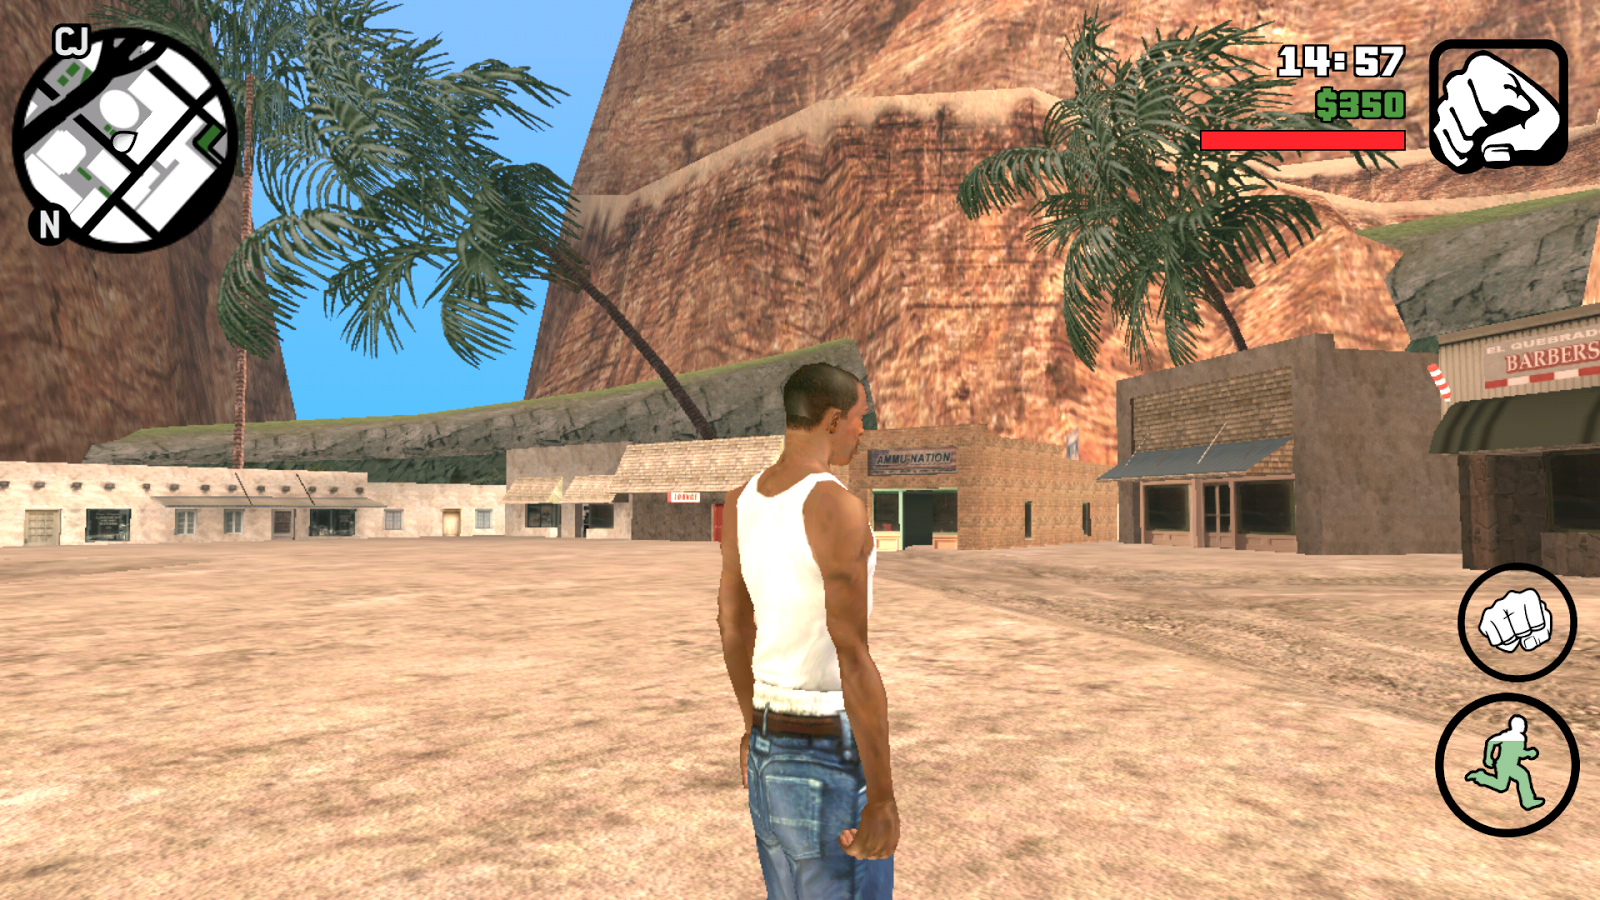 descargar gta san andreas para android 2017 mega